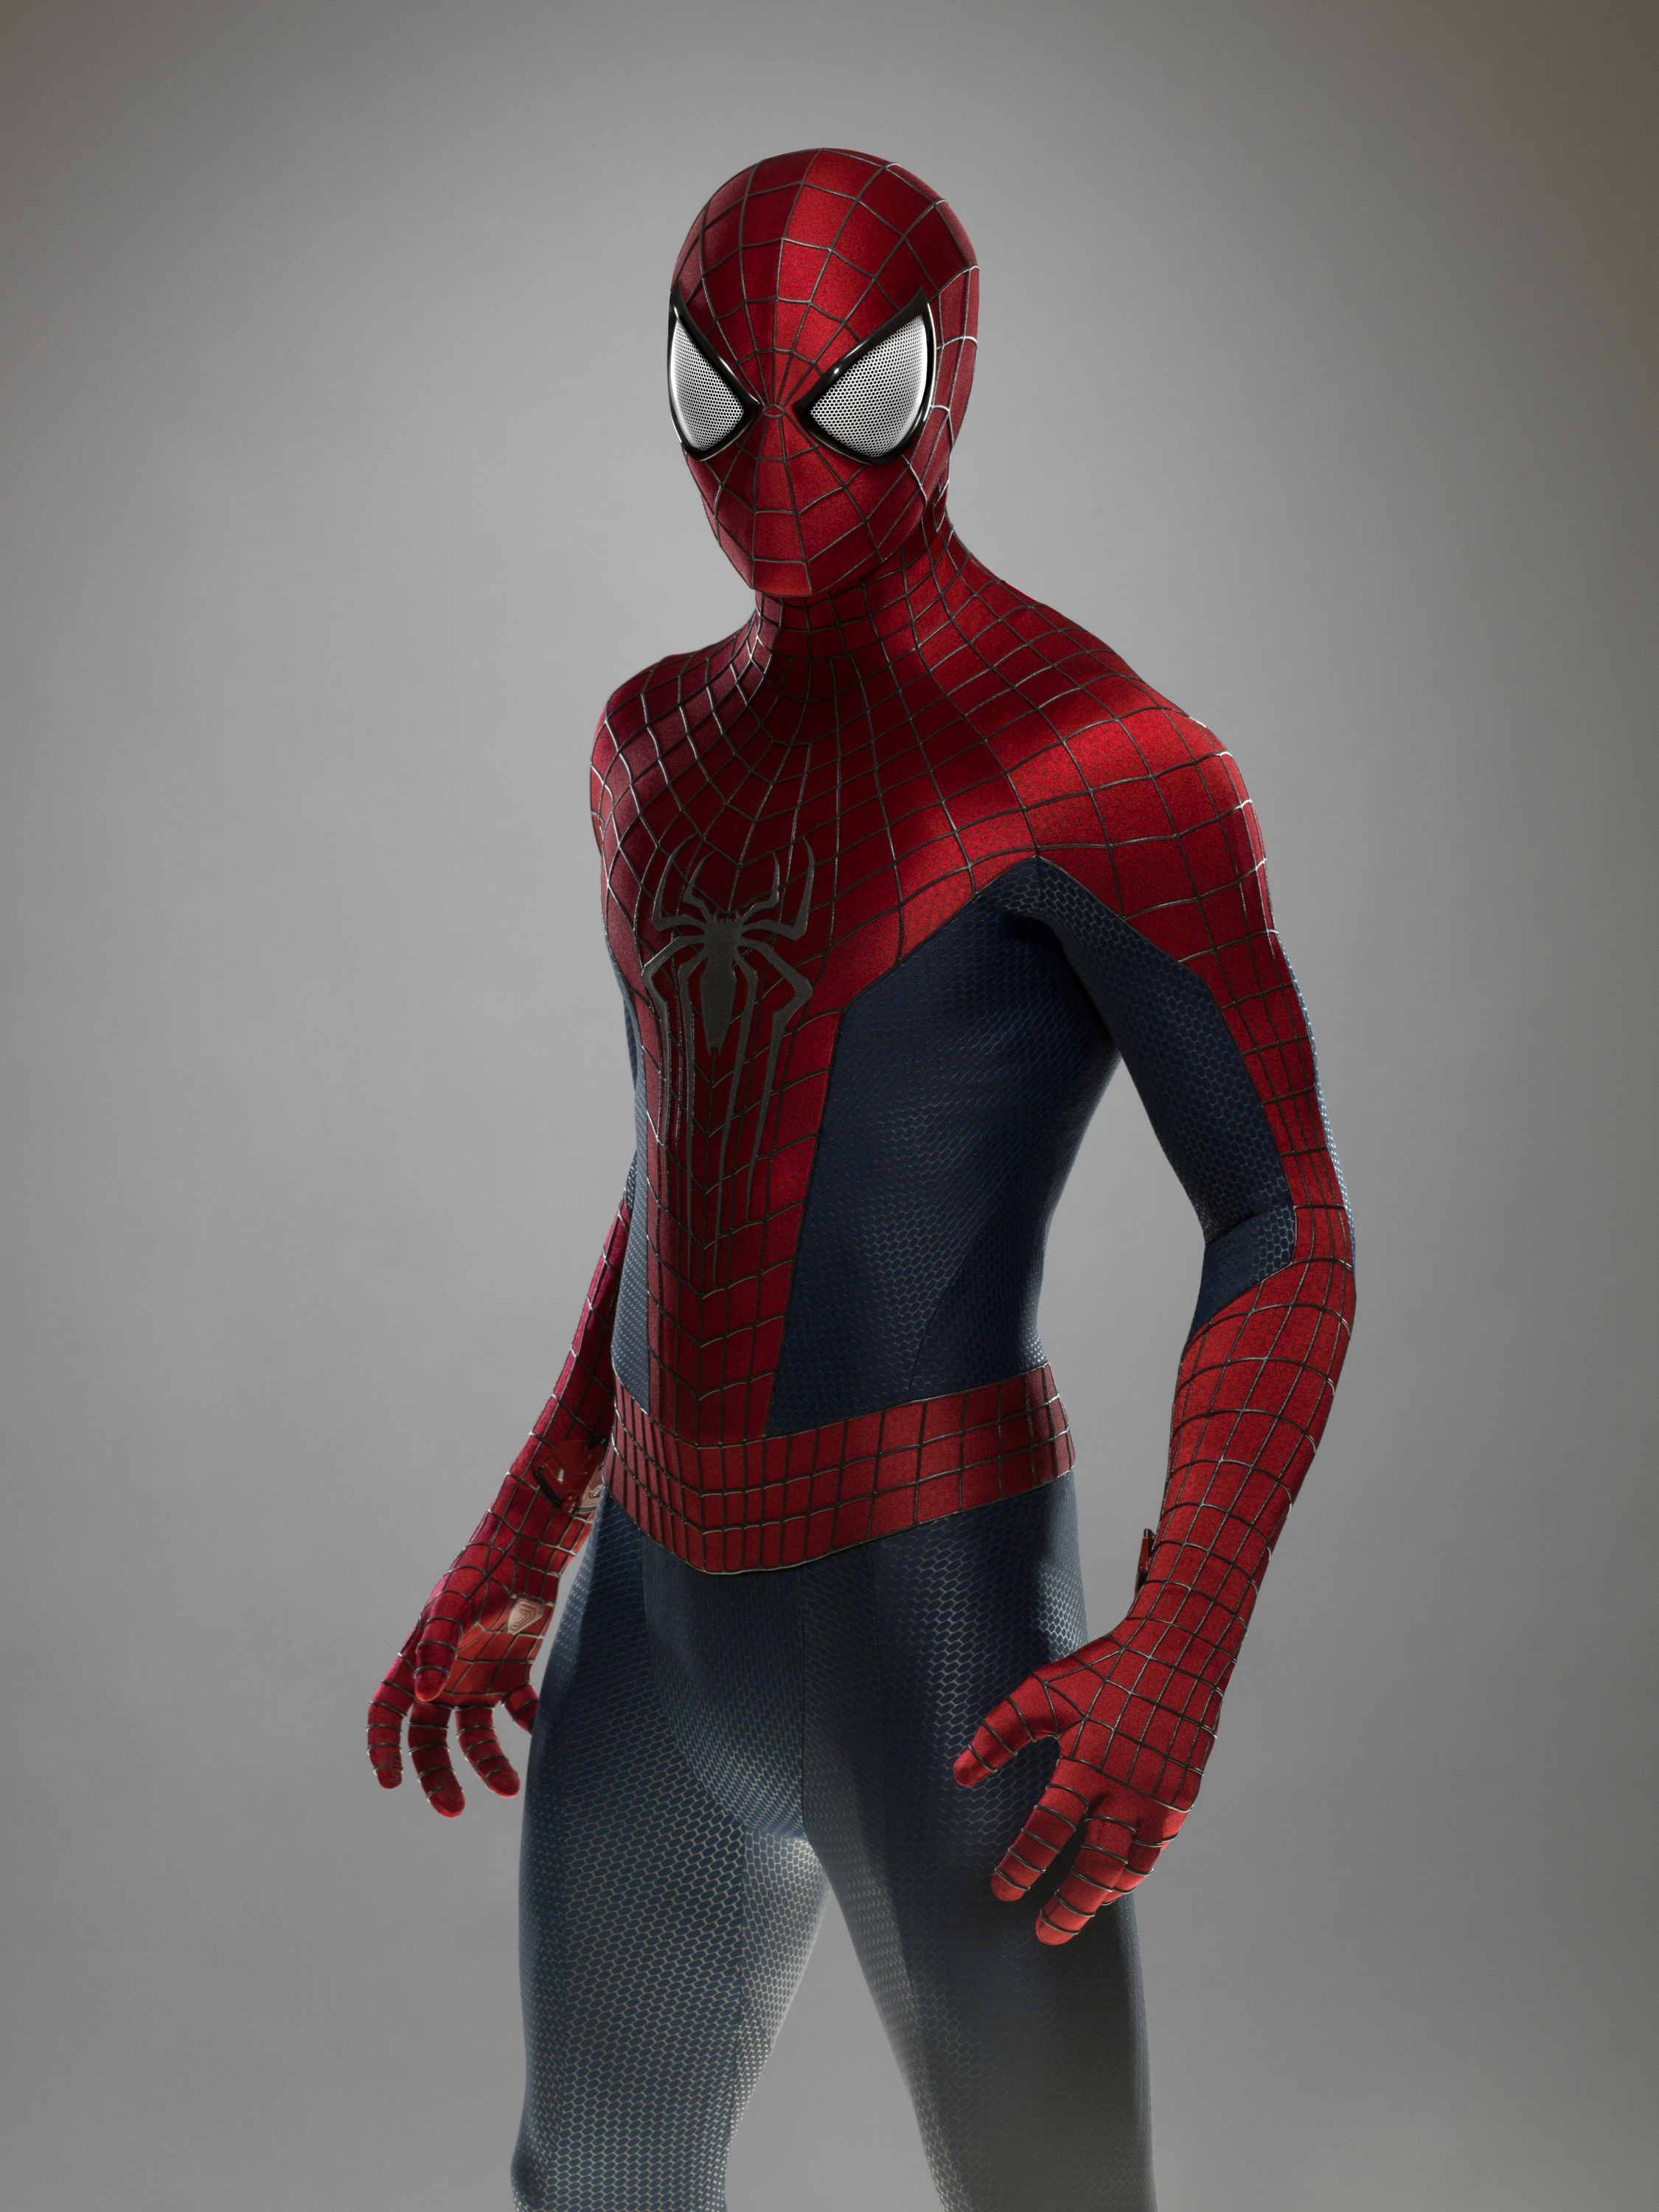 Spidey's suit in The Amazing Spider-Man 3 - Page 4 - The ...